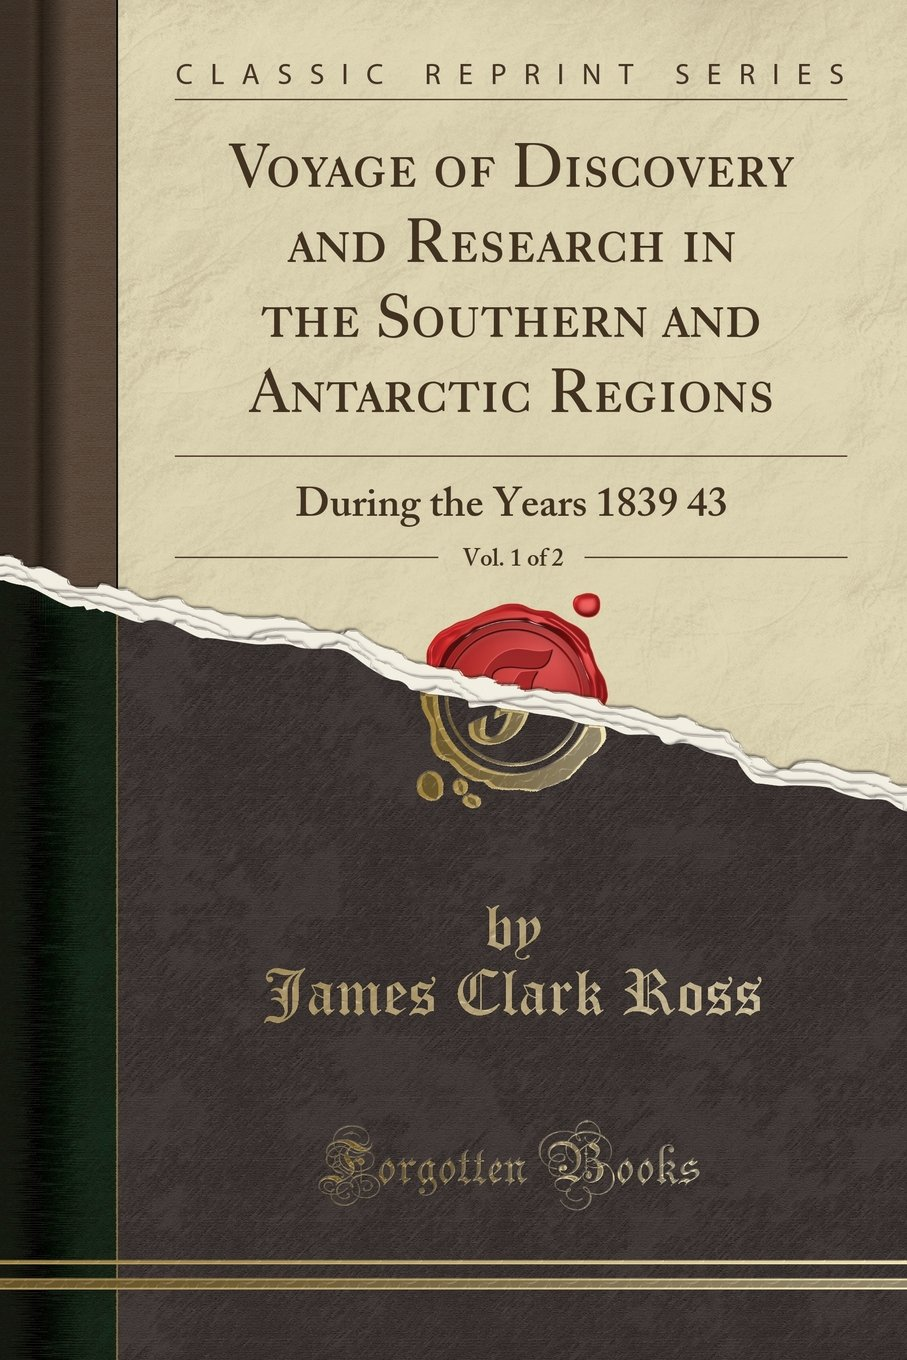 Download Voyage of Discovery and Research in the Southern and Antarctic Regions, Vol. 1 of 2: During the Years 1839 43 (Classic Reprint) pdf epub